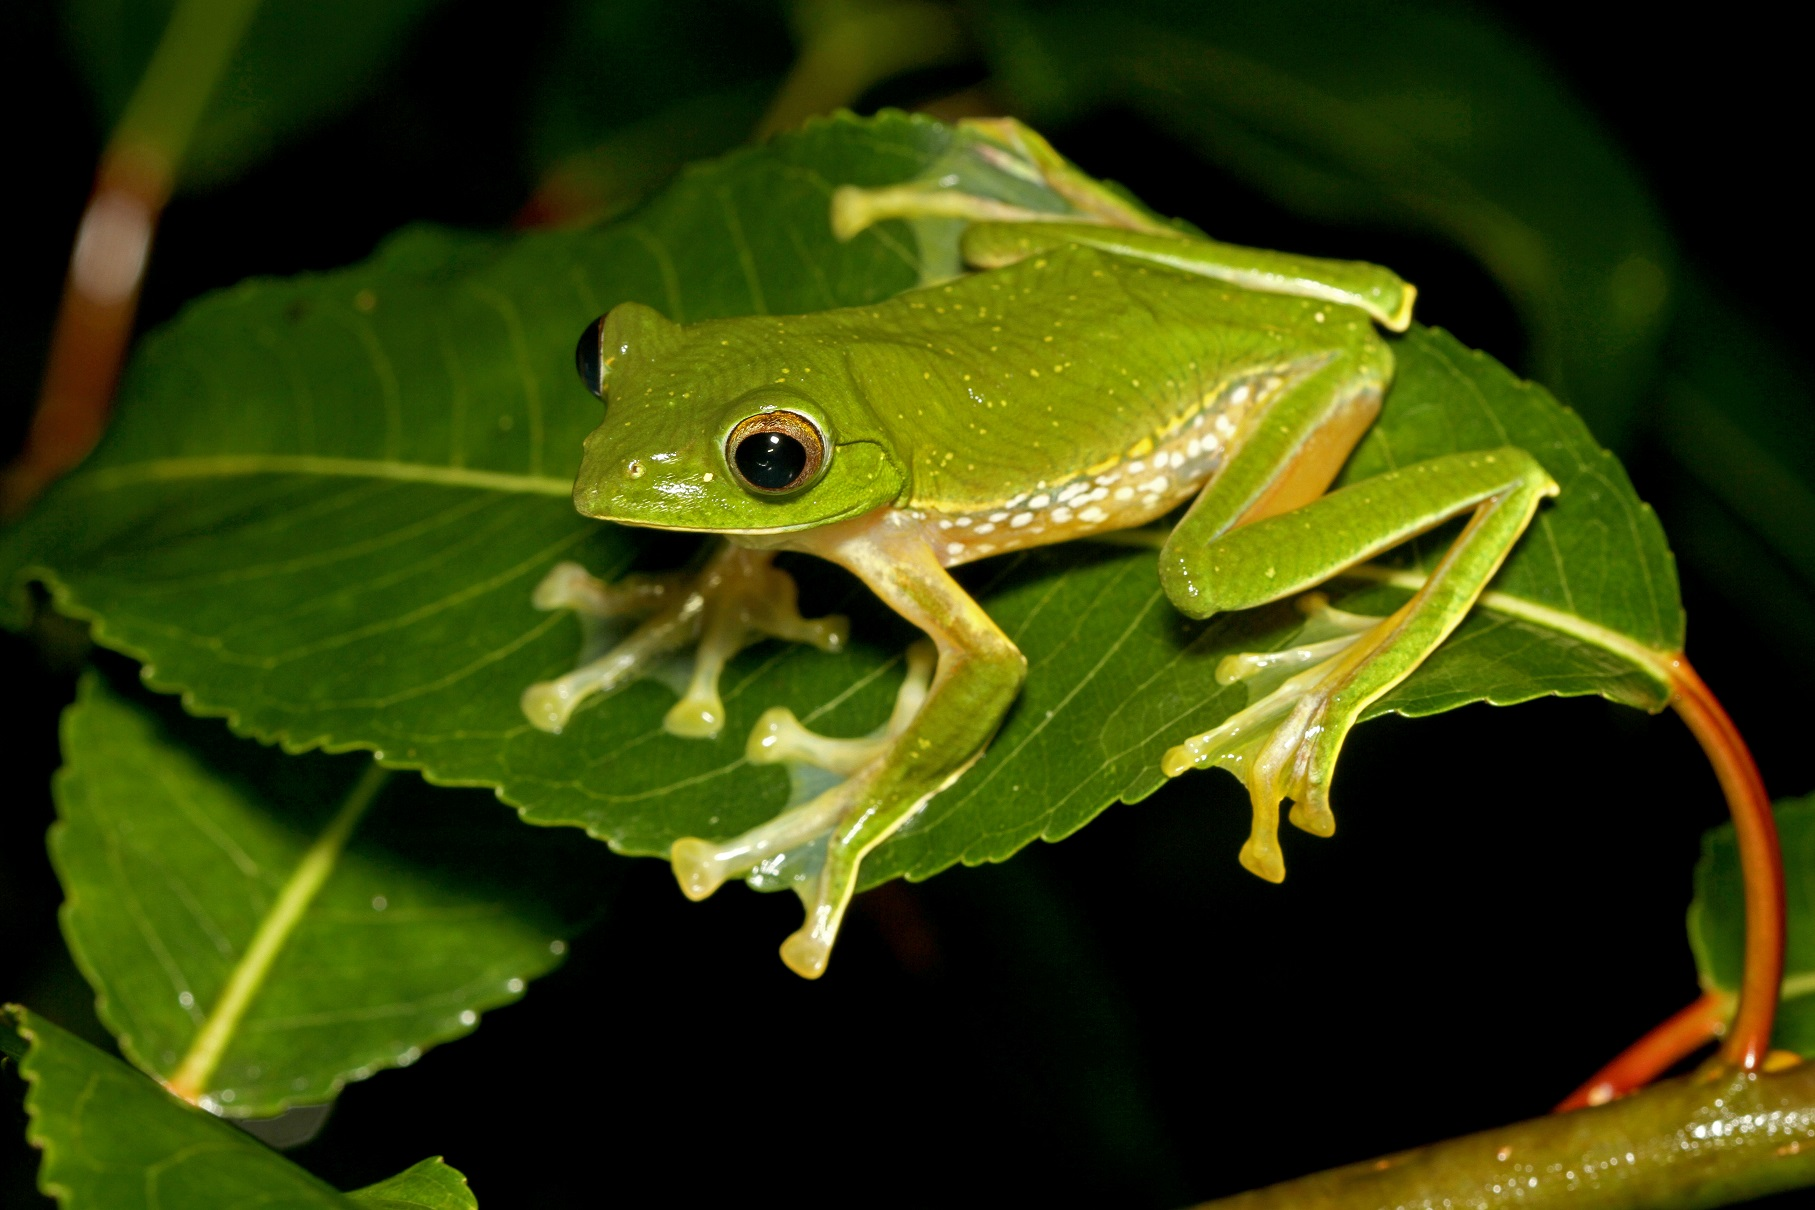 A resident of the shola forests of the southern Western Ghats, the Anaimalai flying frog looks similar to the Malabar gliding frog, which explains its scientific name 'pseudomalabaricus'. The frog, measuring up to 7 cm, is distinguished by a broad brown stripe with white spots along its flanks.